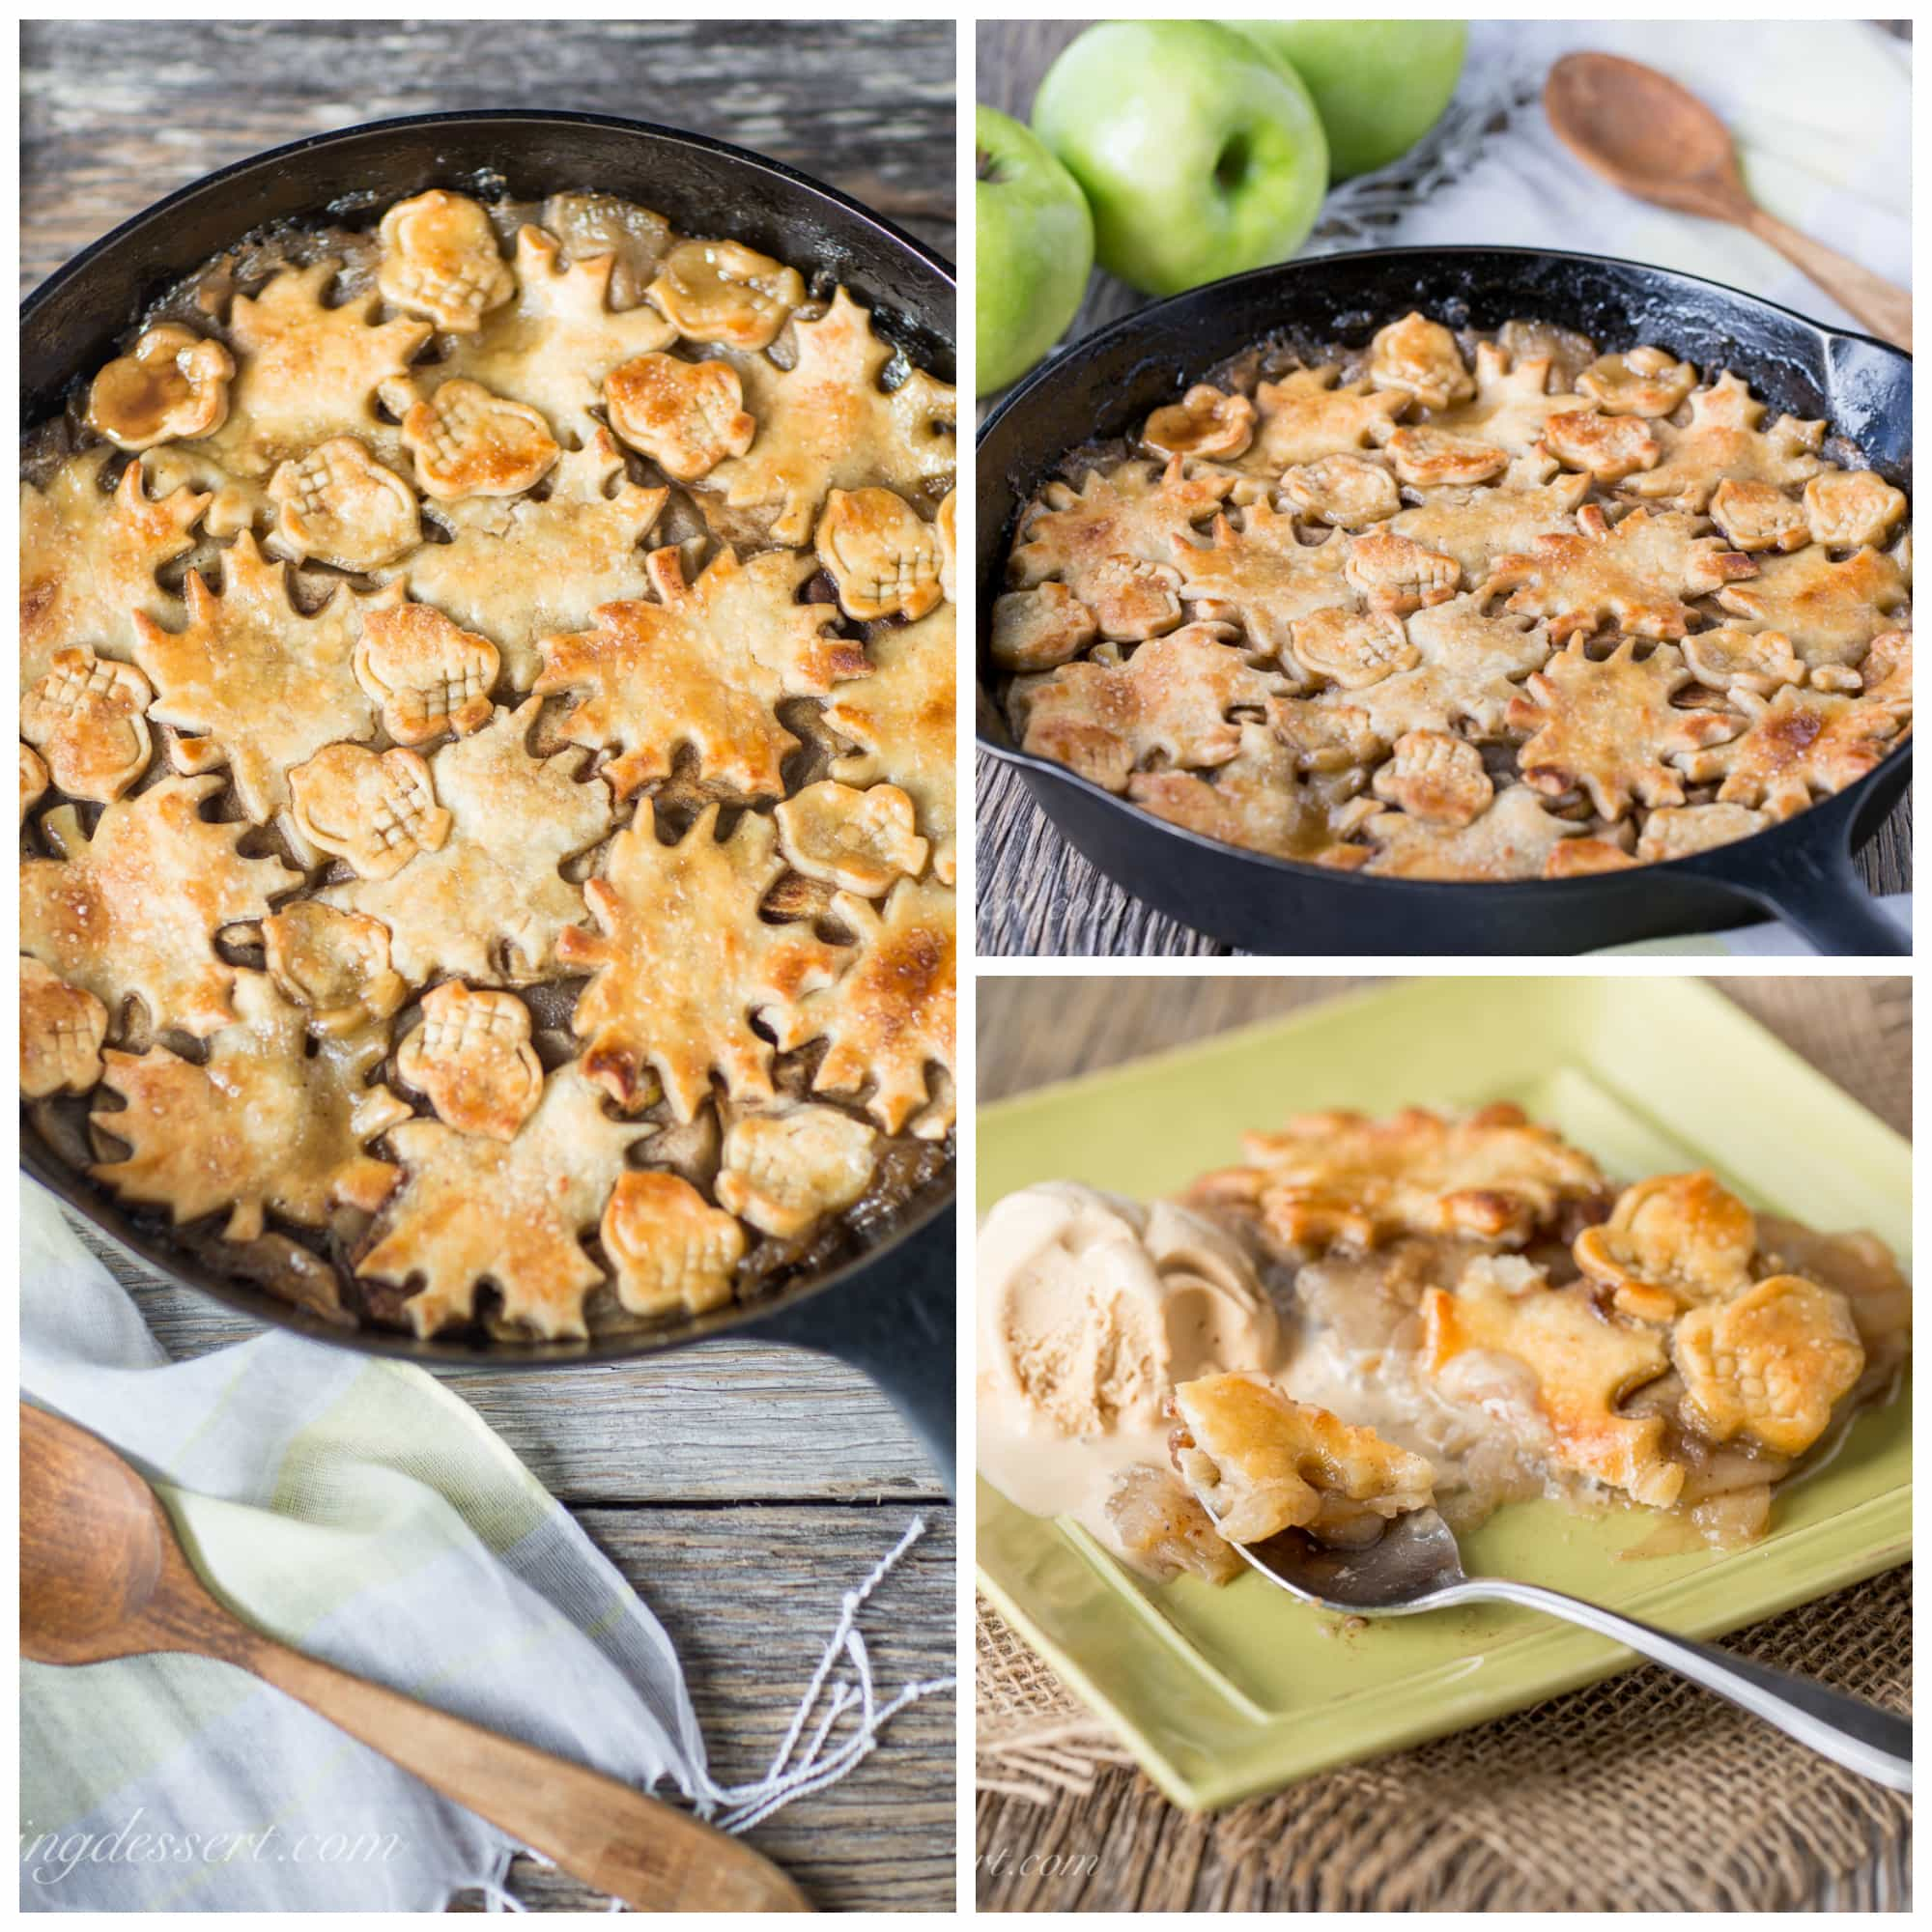 Apple Pandowdy (or Apple Pan Dowdy) is an old-fashioned skillet apple ...